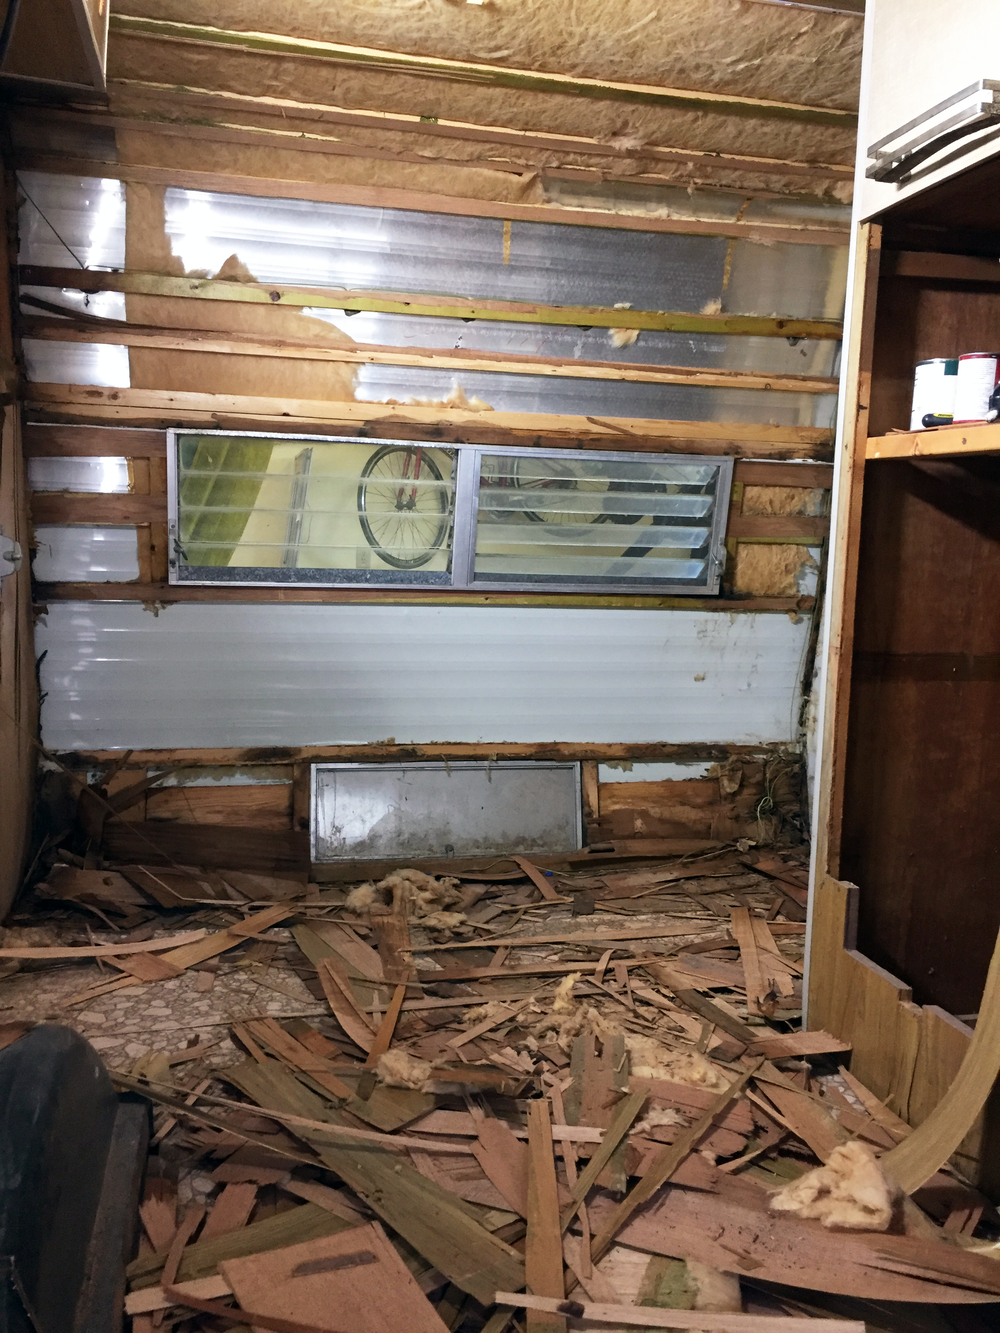 All of those paper-thin wood shards on the ground used to make up the back and side walls of the camper. But look at that cute little metal hatch to the exterior of the camper at the bottom of the wall! We've got some ideas for that later.